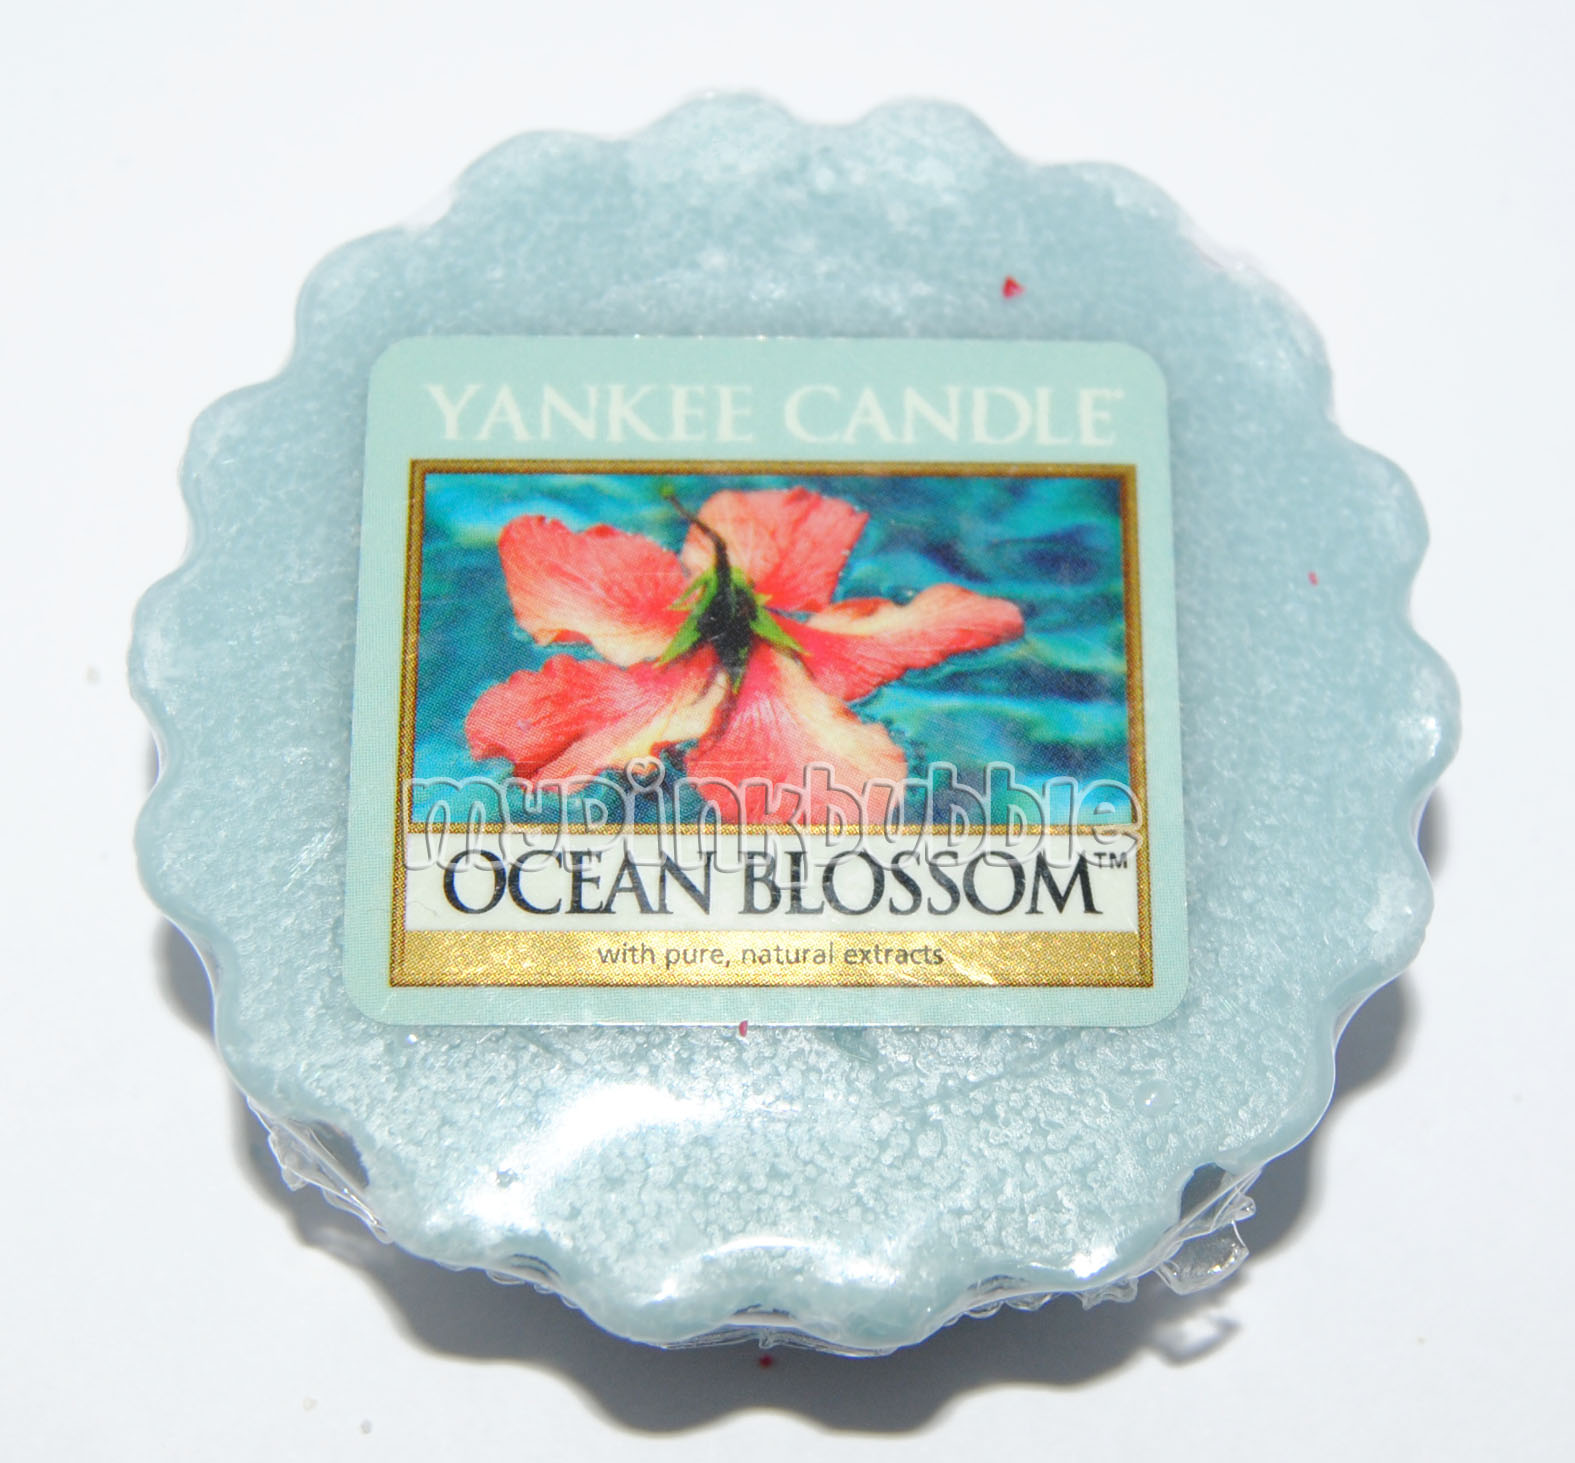 Yankee Candle Ocean Blossom